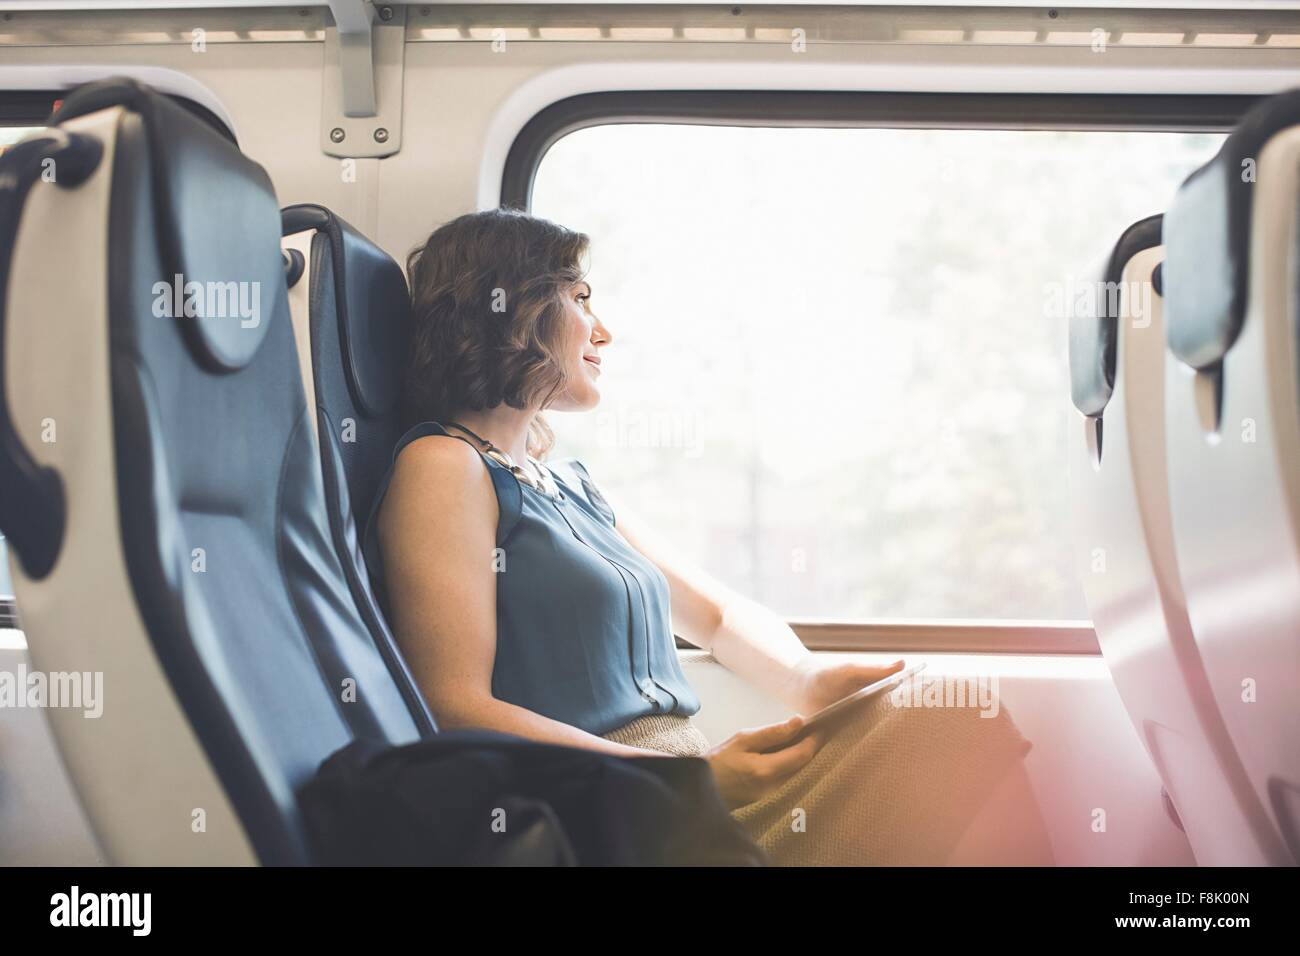 Mid adult woman on train, holding digital tablet, looking out of window - Stock Image